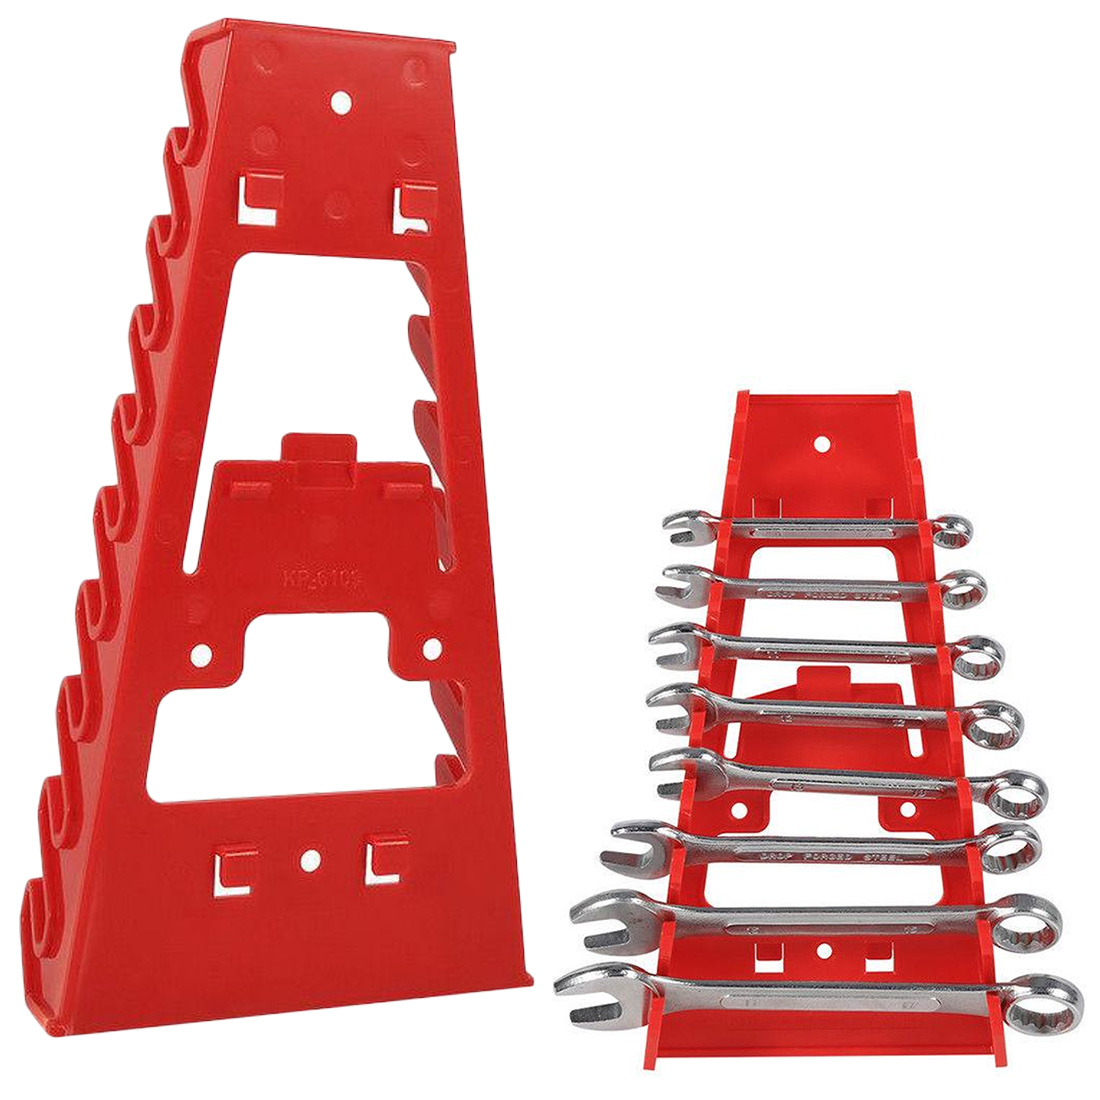 9 Slot Wrenches Rack Standard Organizer Wrench Storage Holder Wall Mounted Plastic Red Holder Tools